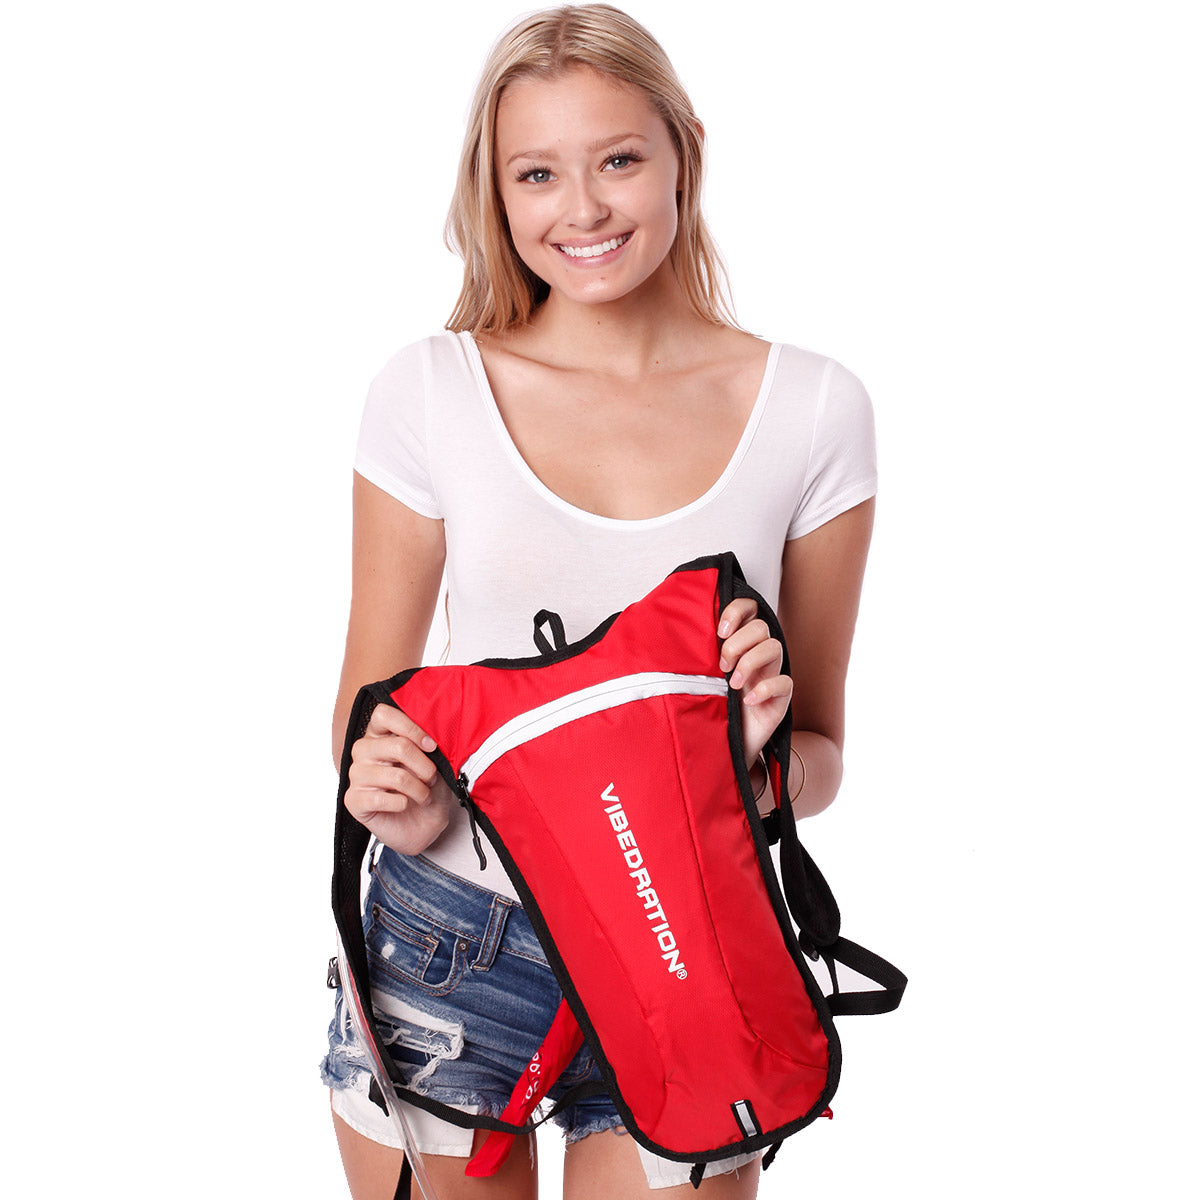 Female holding red and white hydration pack.